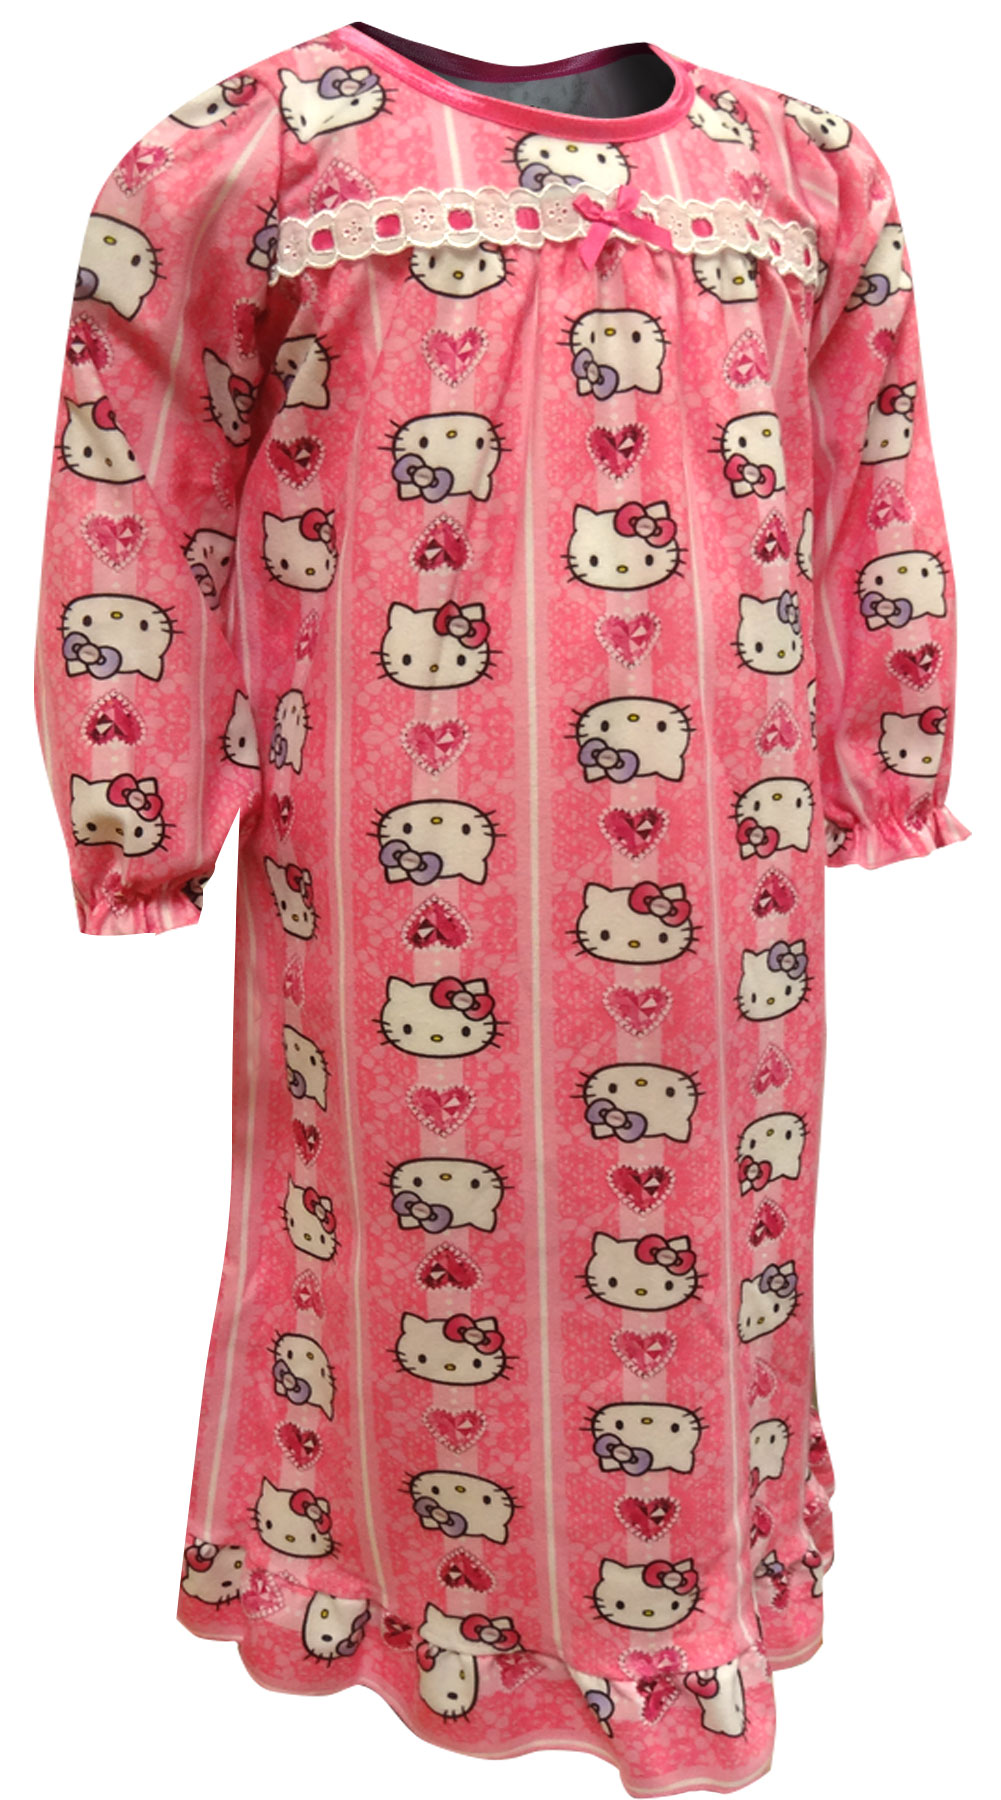 Image of Hello KittyTraditional Flannel Night Gown for girls